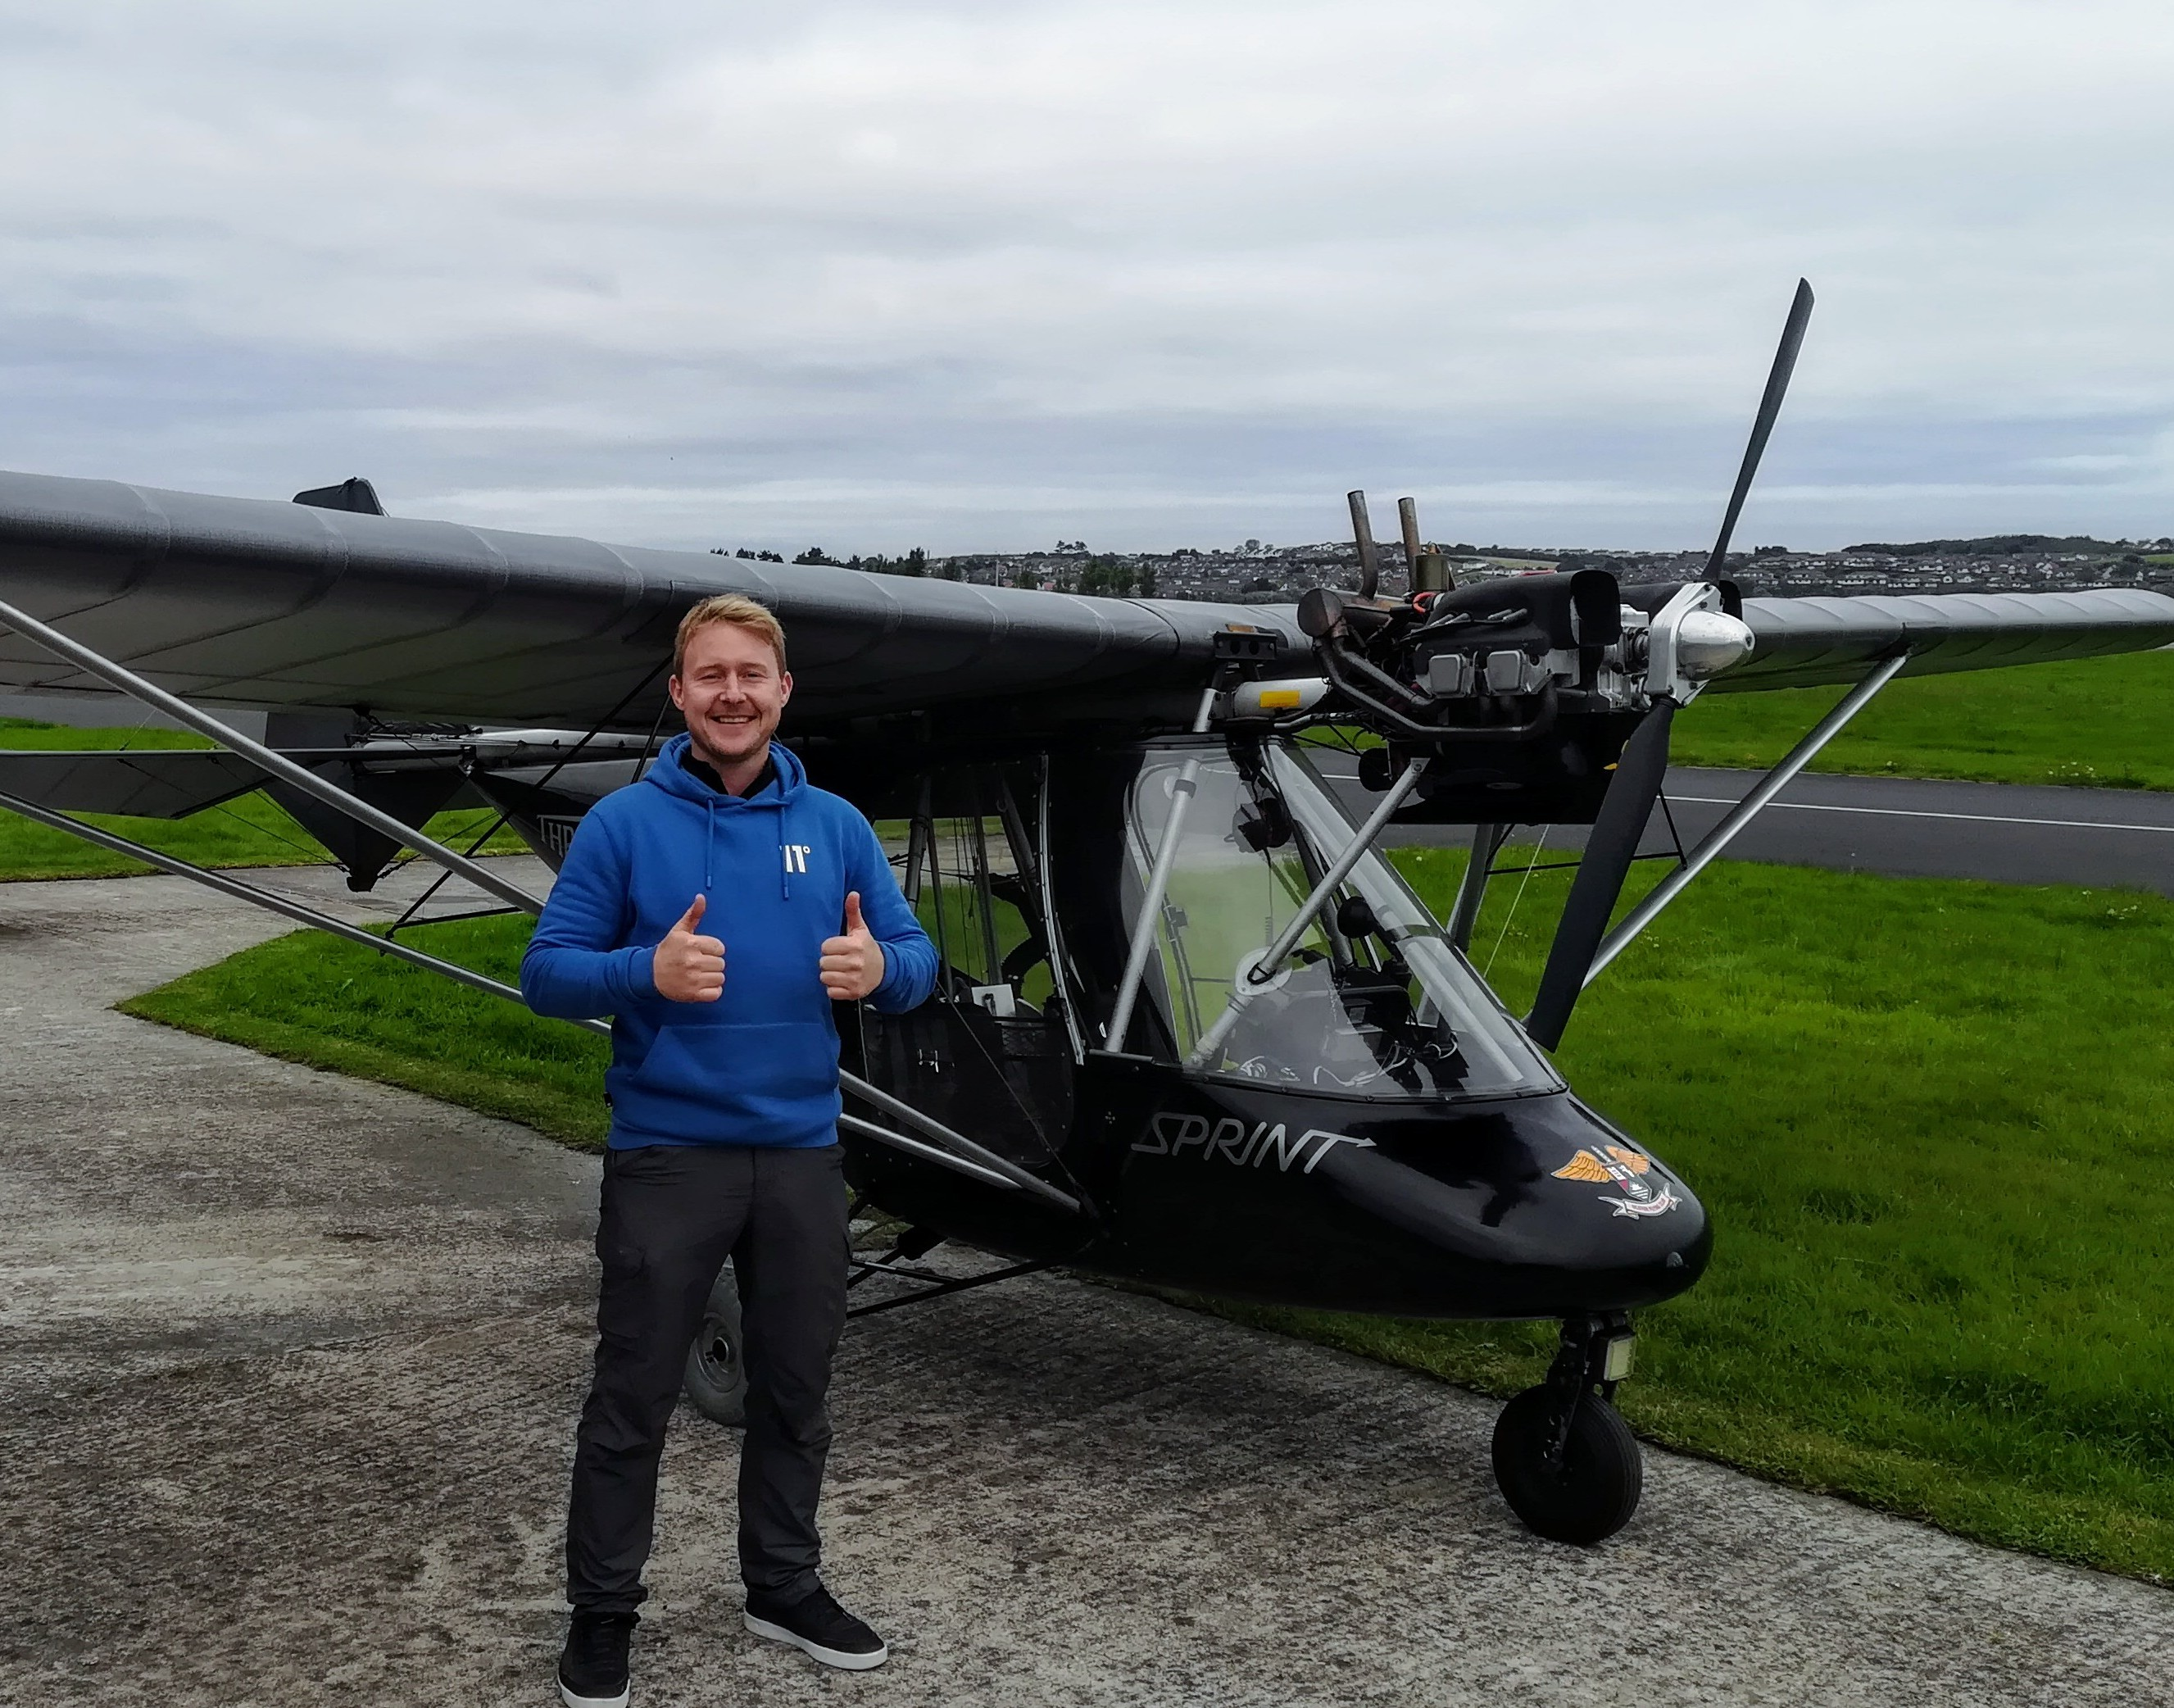 David McGuire Now licenced to fly in Ireland